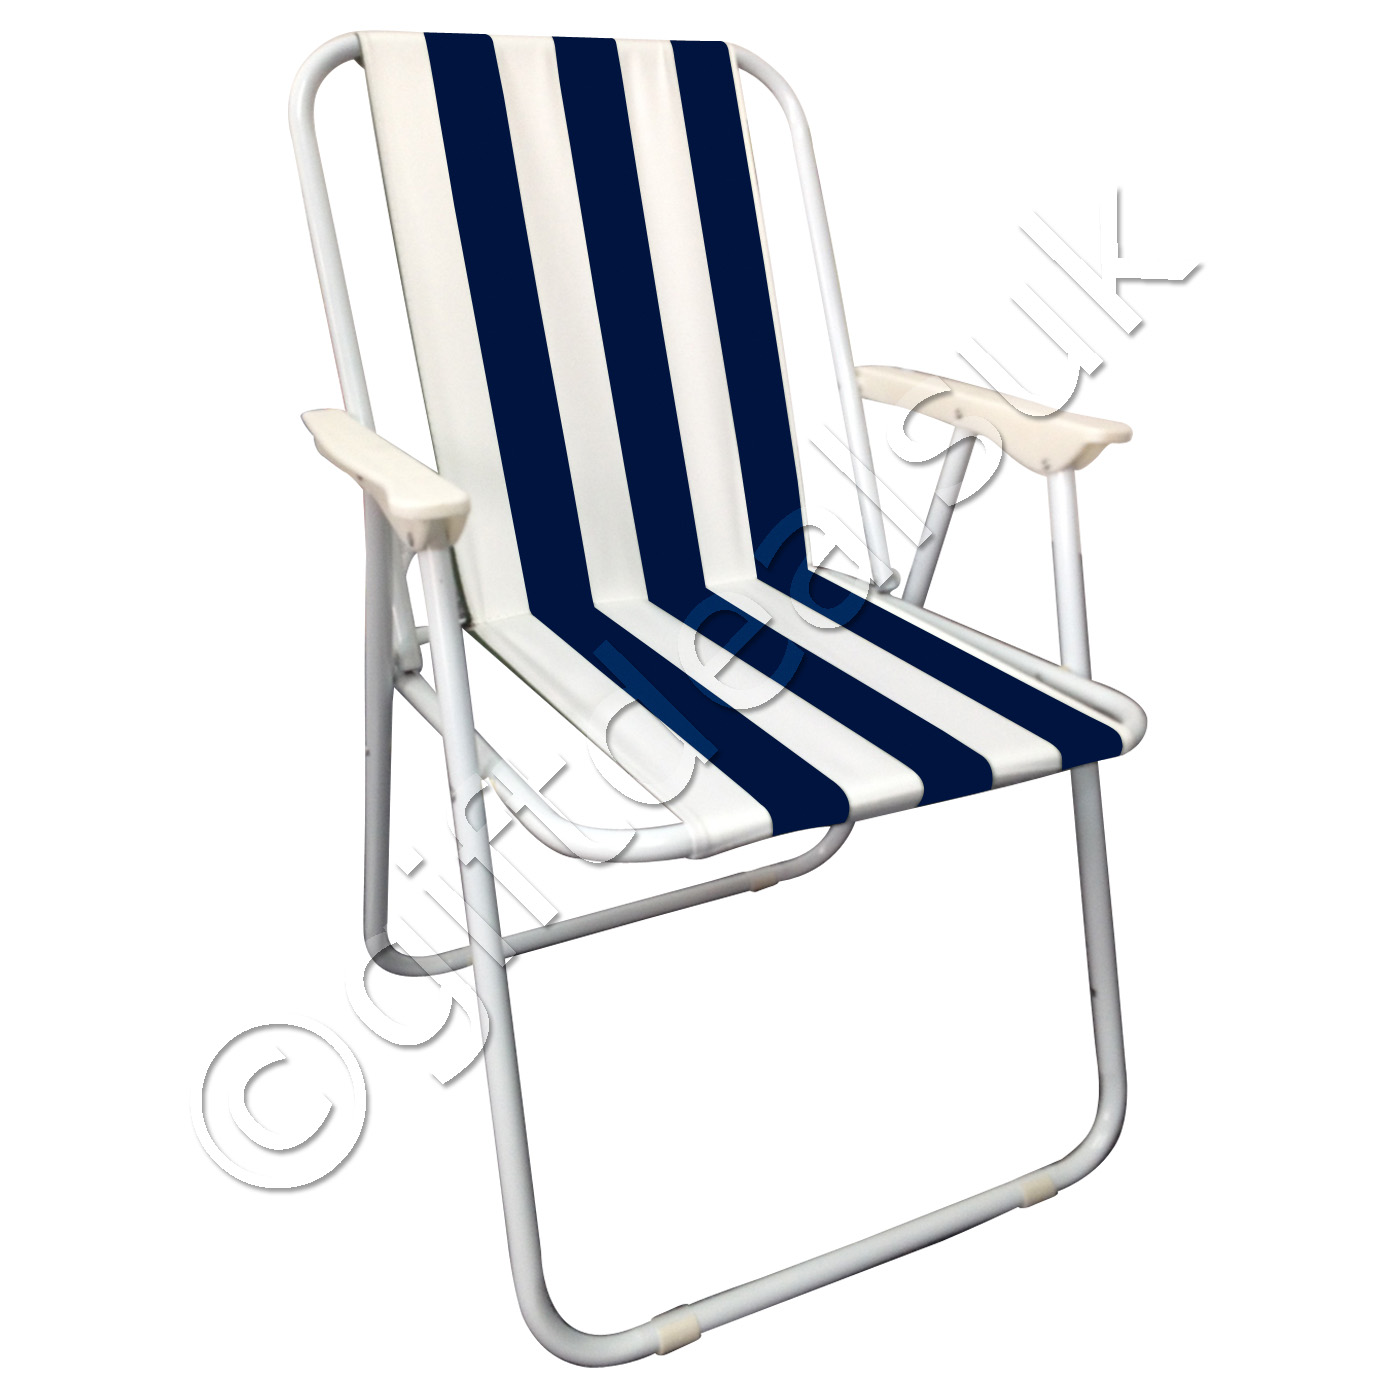 New design portable folding deck chair outdoor garden for New chair design